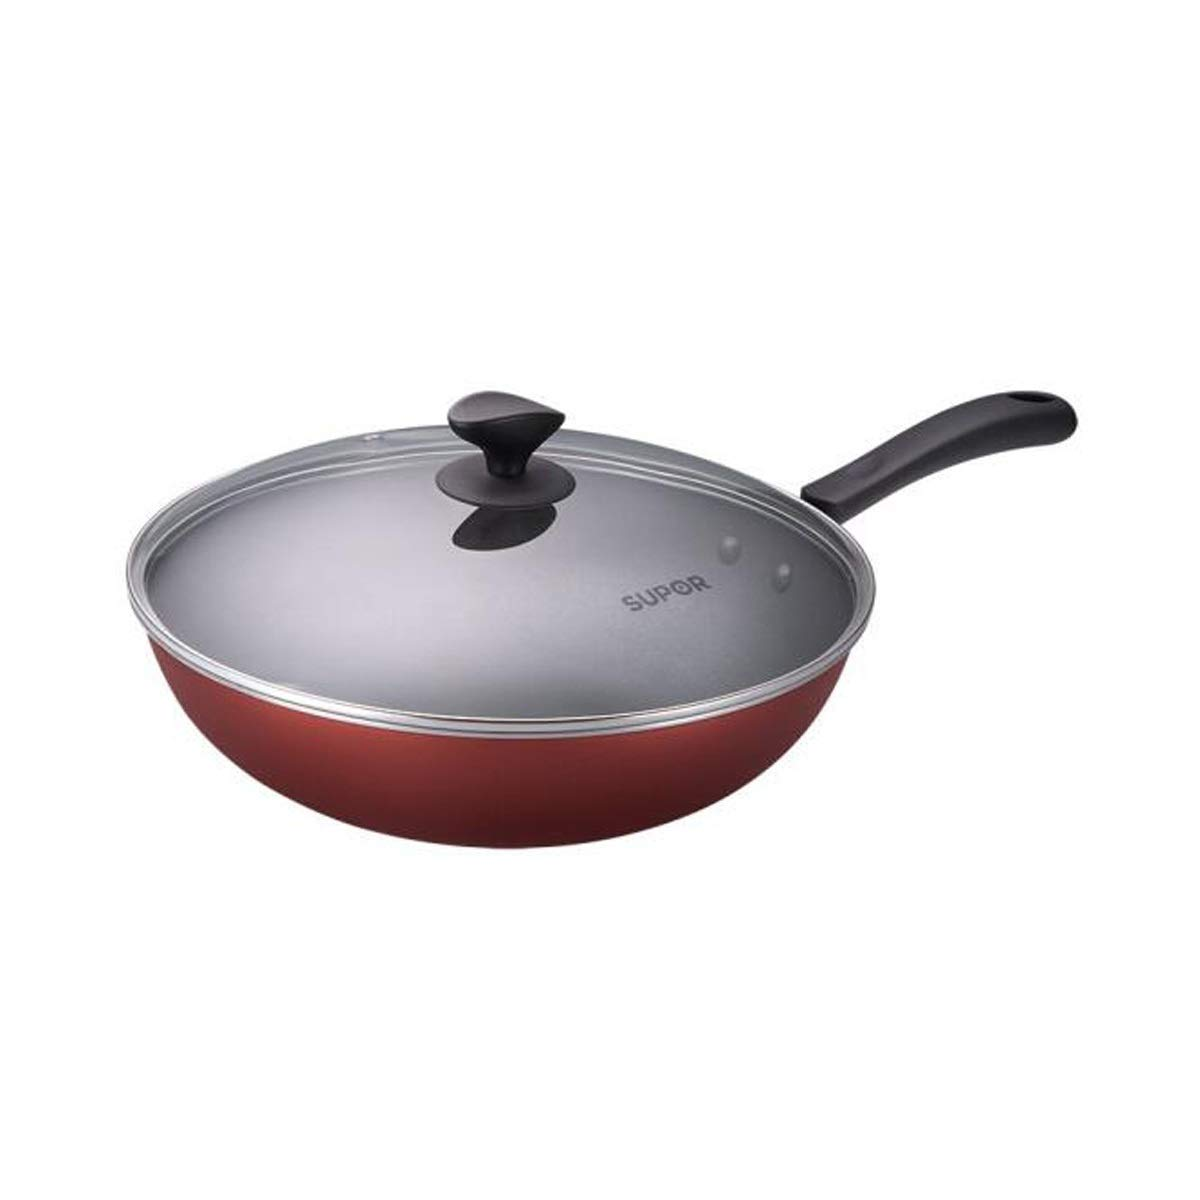 Wok, Colorful Easy To Clean Non-stick Wok 30CM, Red (Color : Red, Size : 30cm)